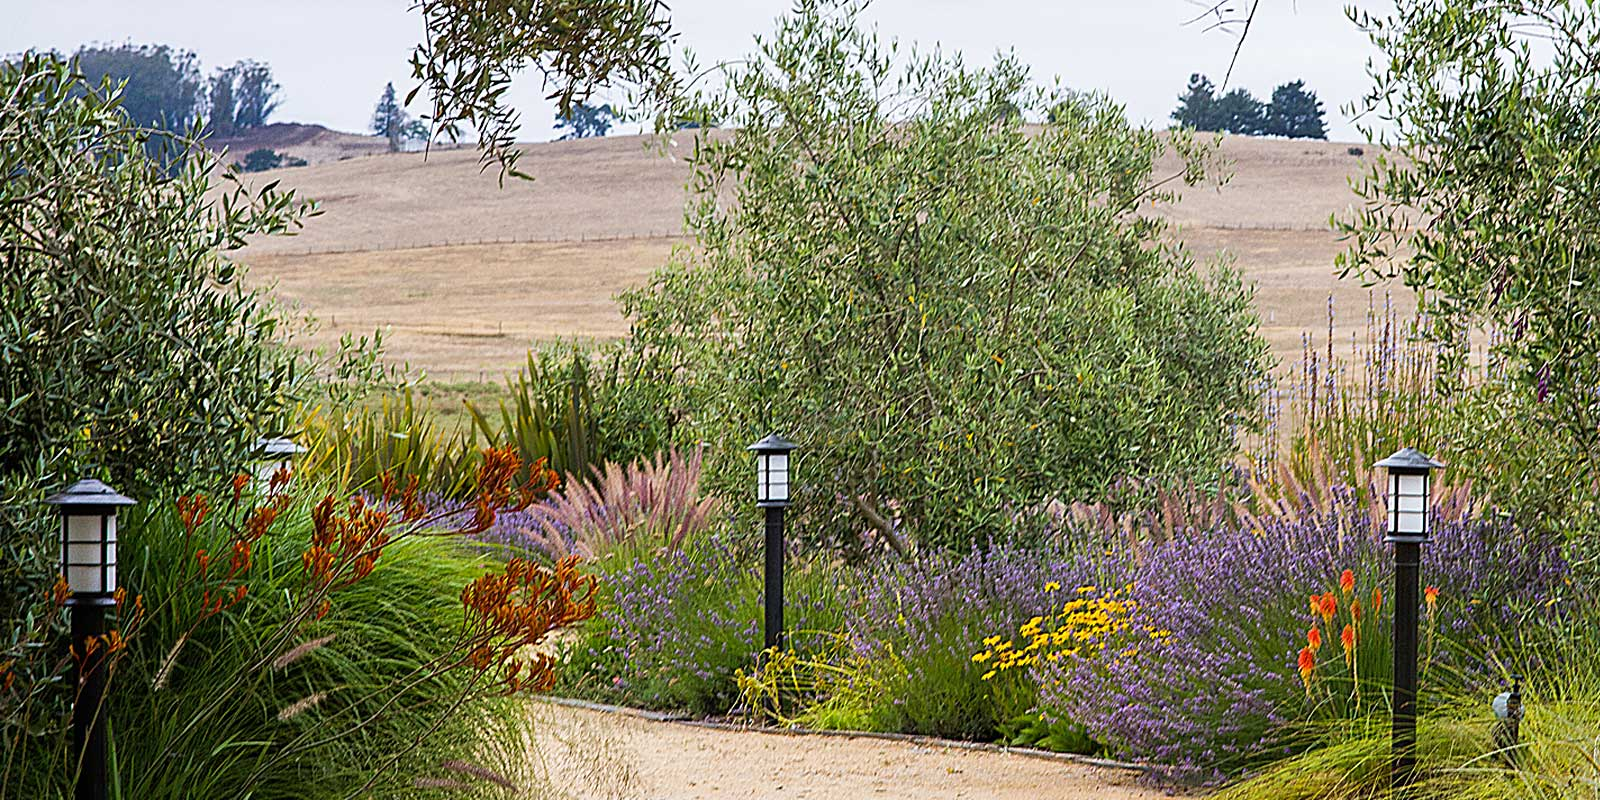 Equestrian ranch landscaped walking path